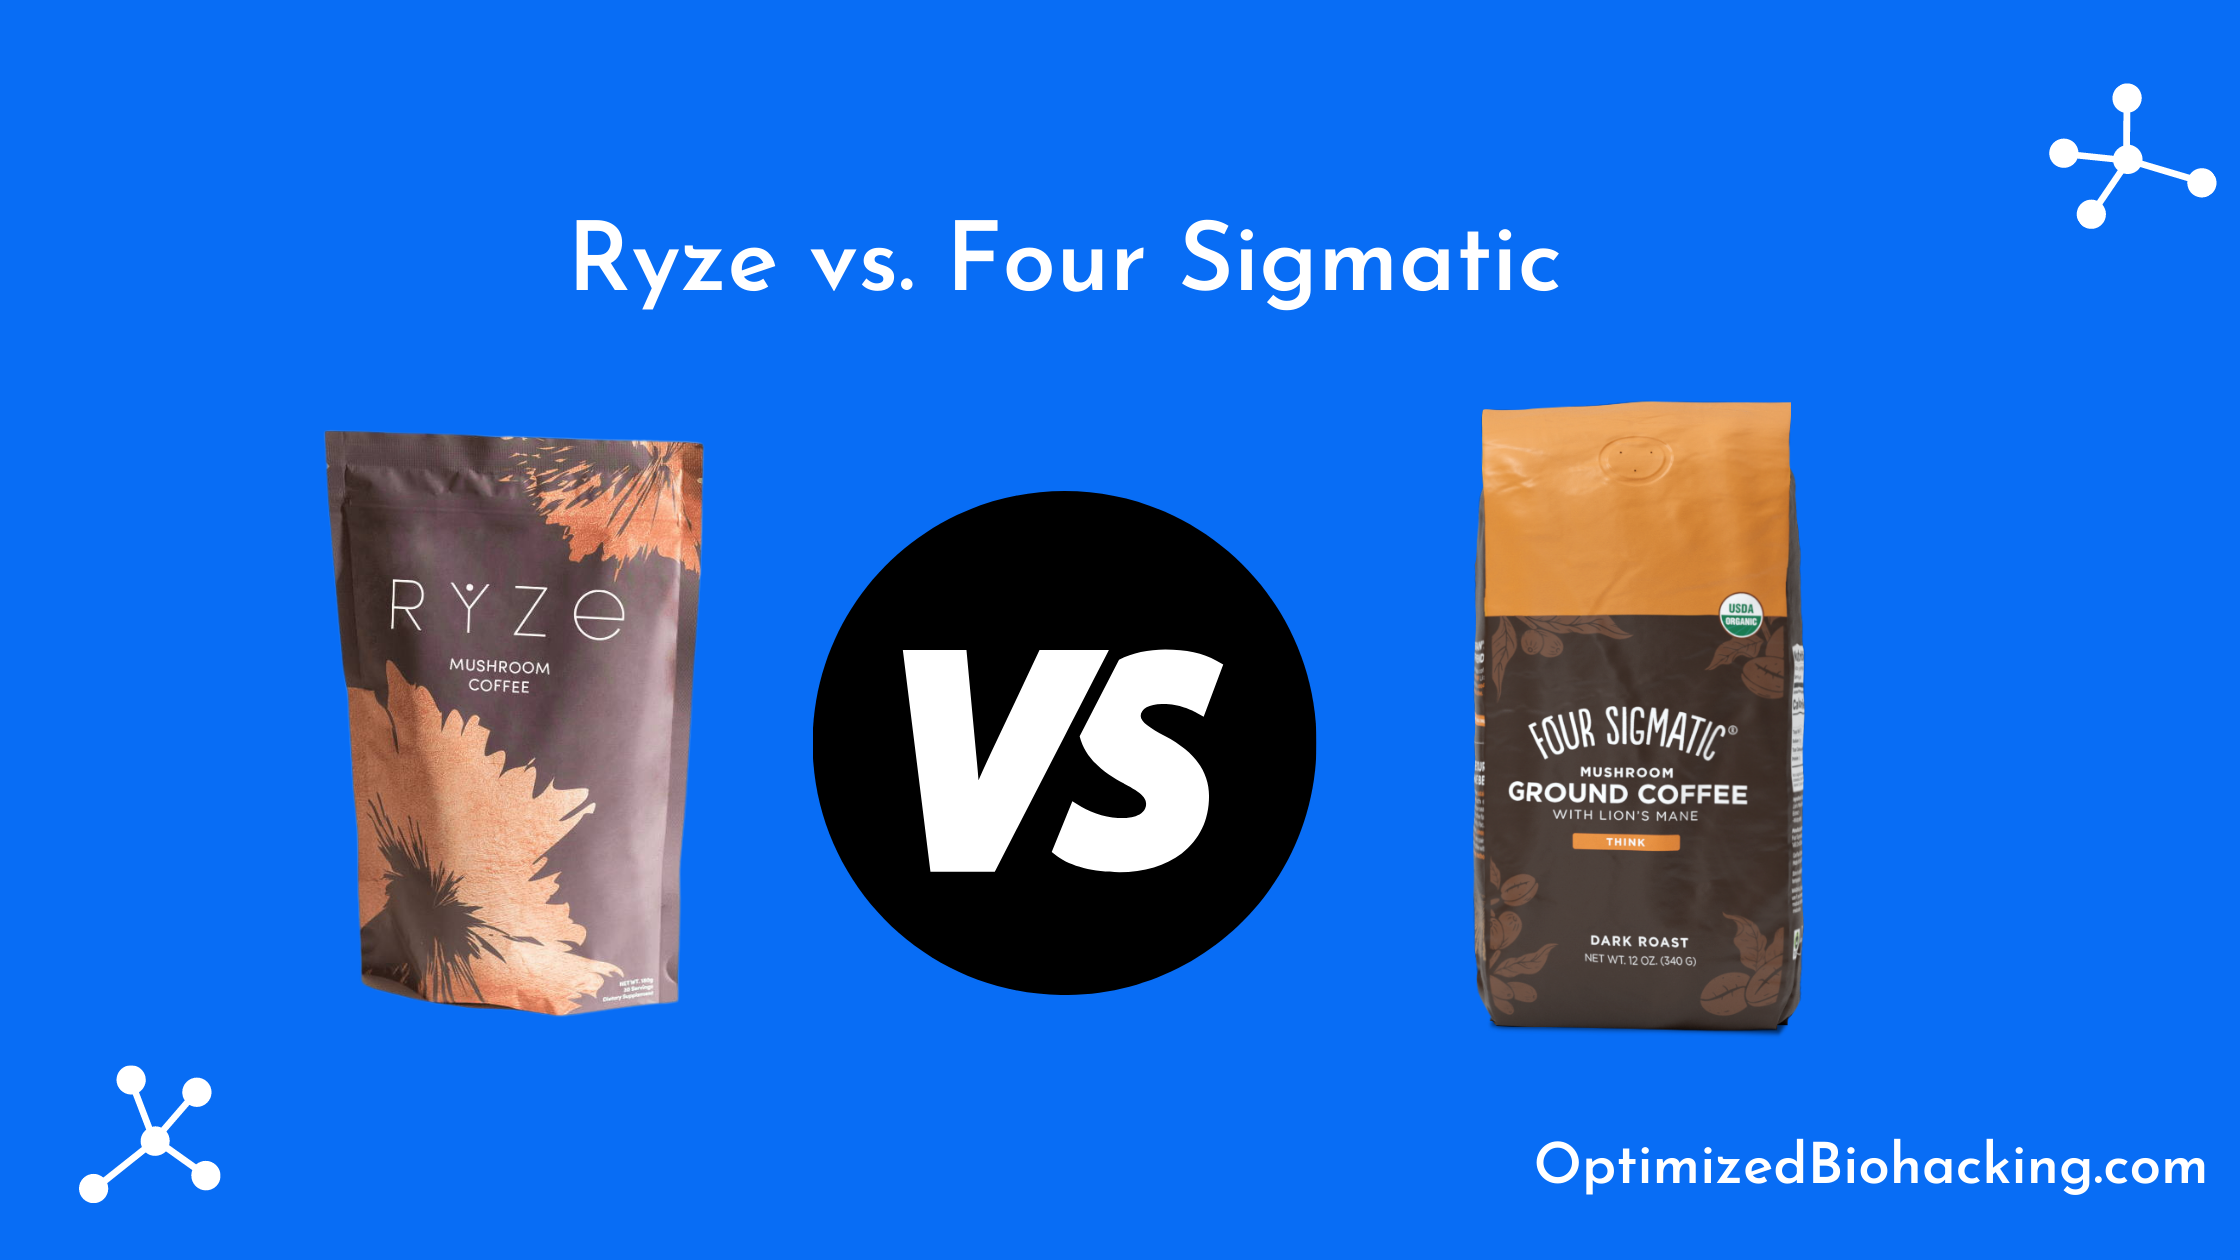 ryze vs. four sigmatic